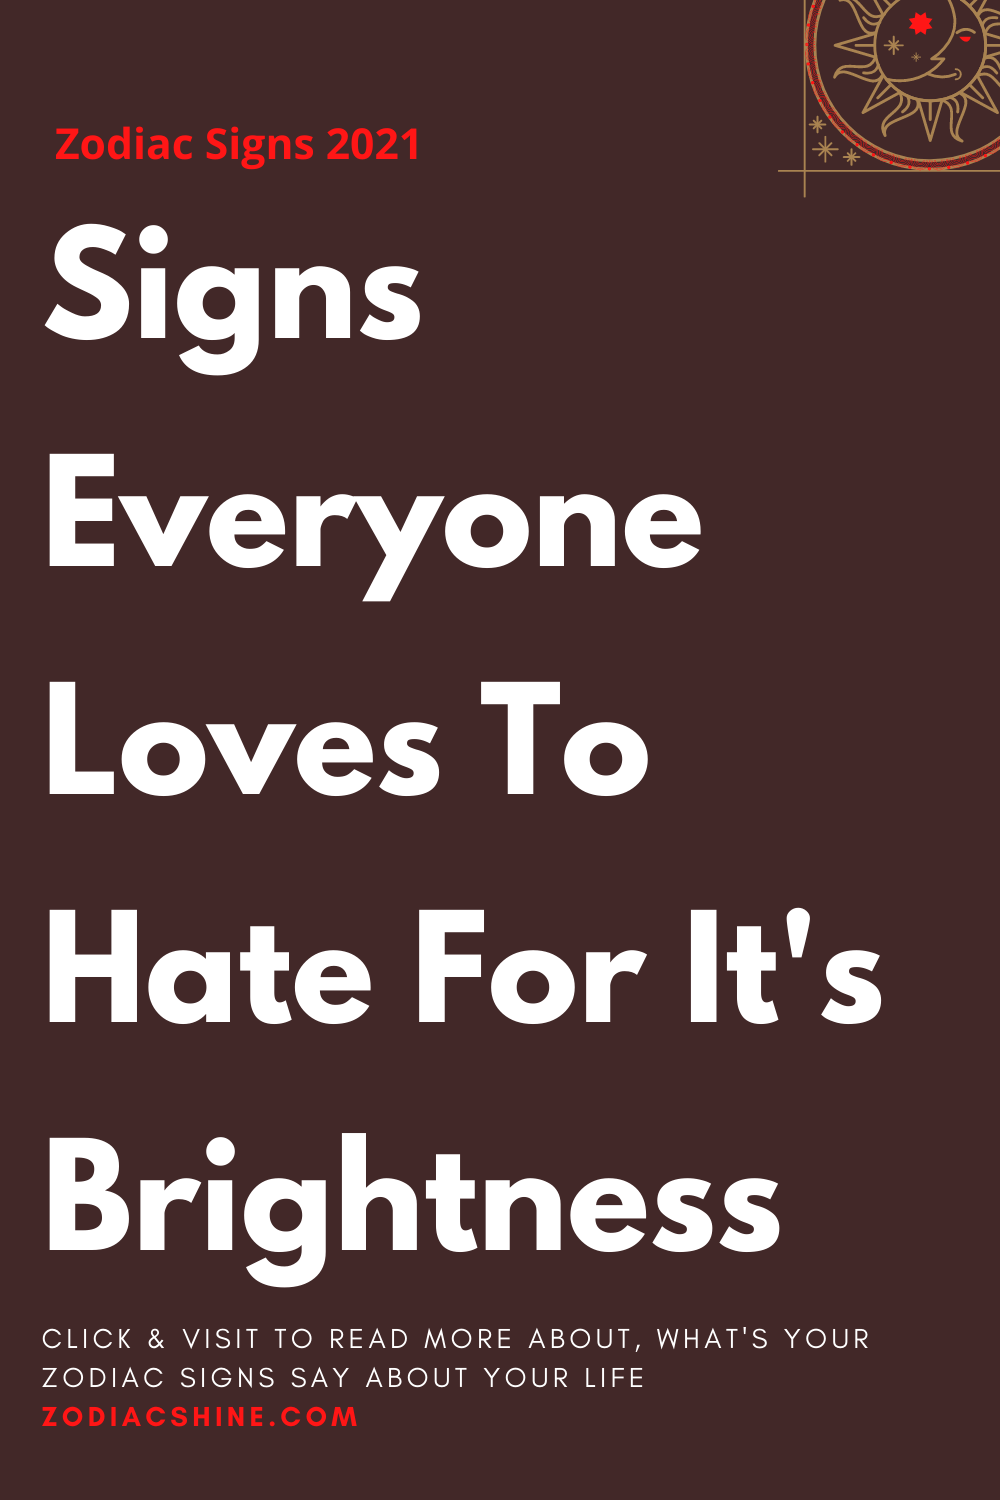 Signs Everyone Loves To Hate For It's Brightness